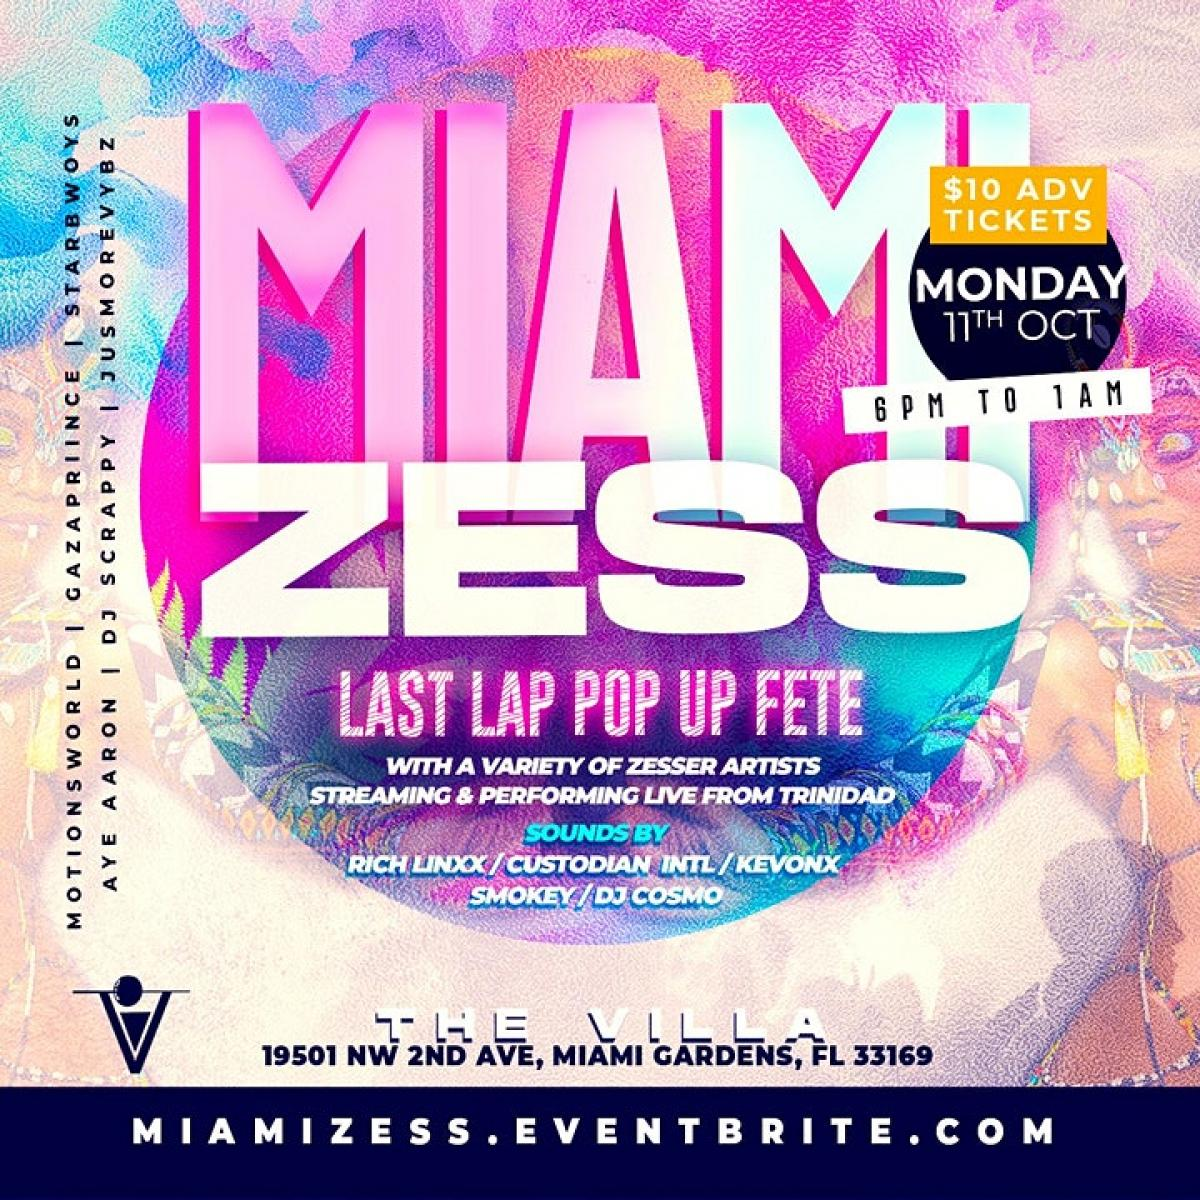 Miami Zess flyer or graphic.